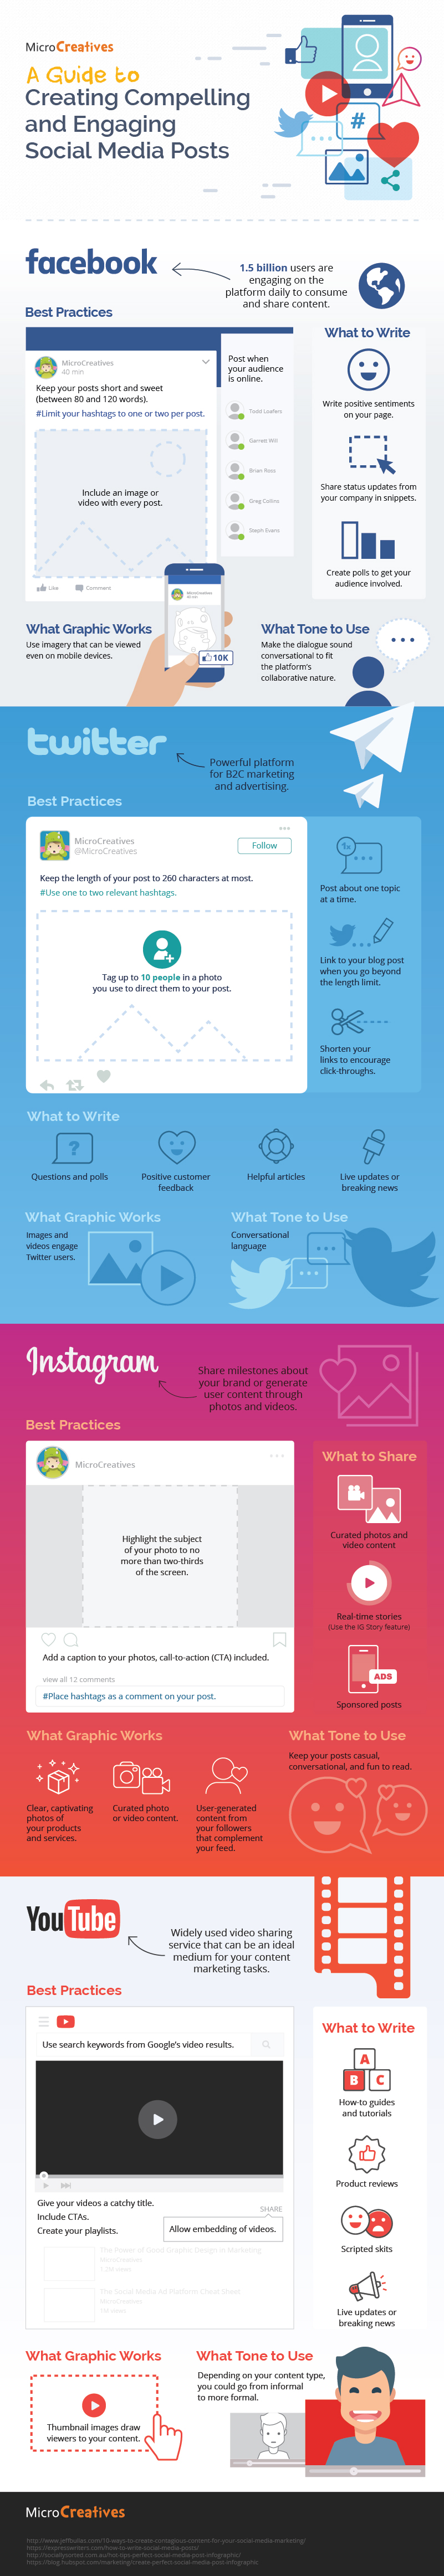 MiC_A-Guide-to-Creating-Compelling-and-Engaging-Social-Media-Posts_v1-01